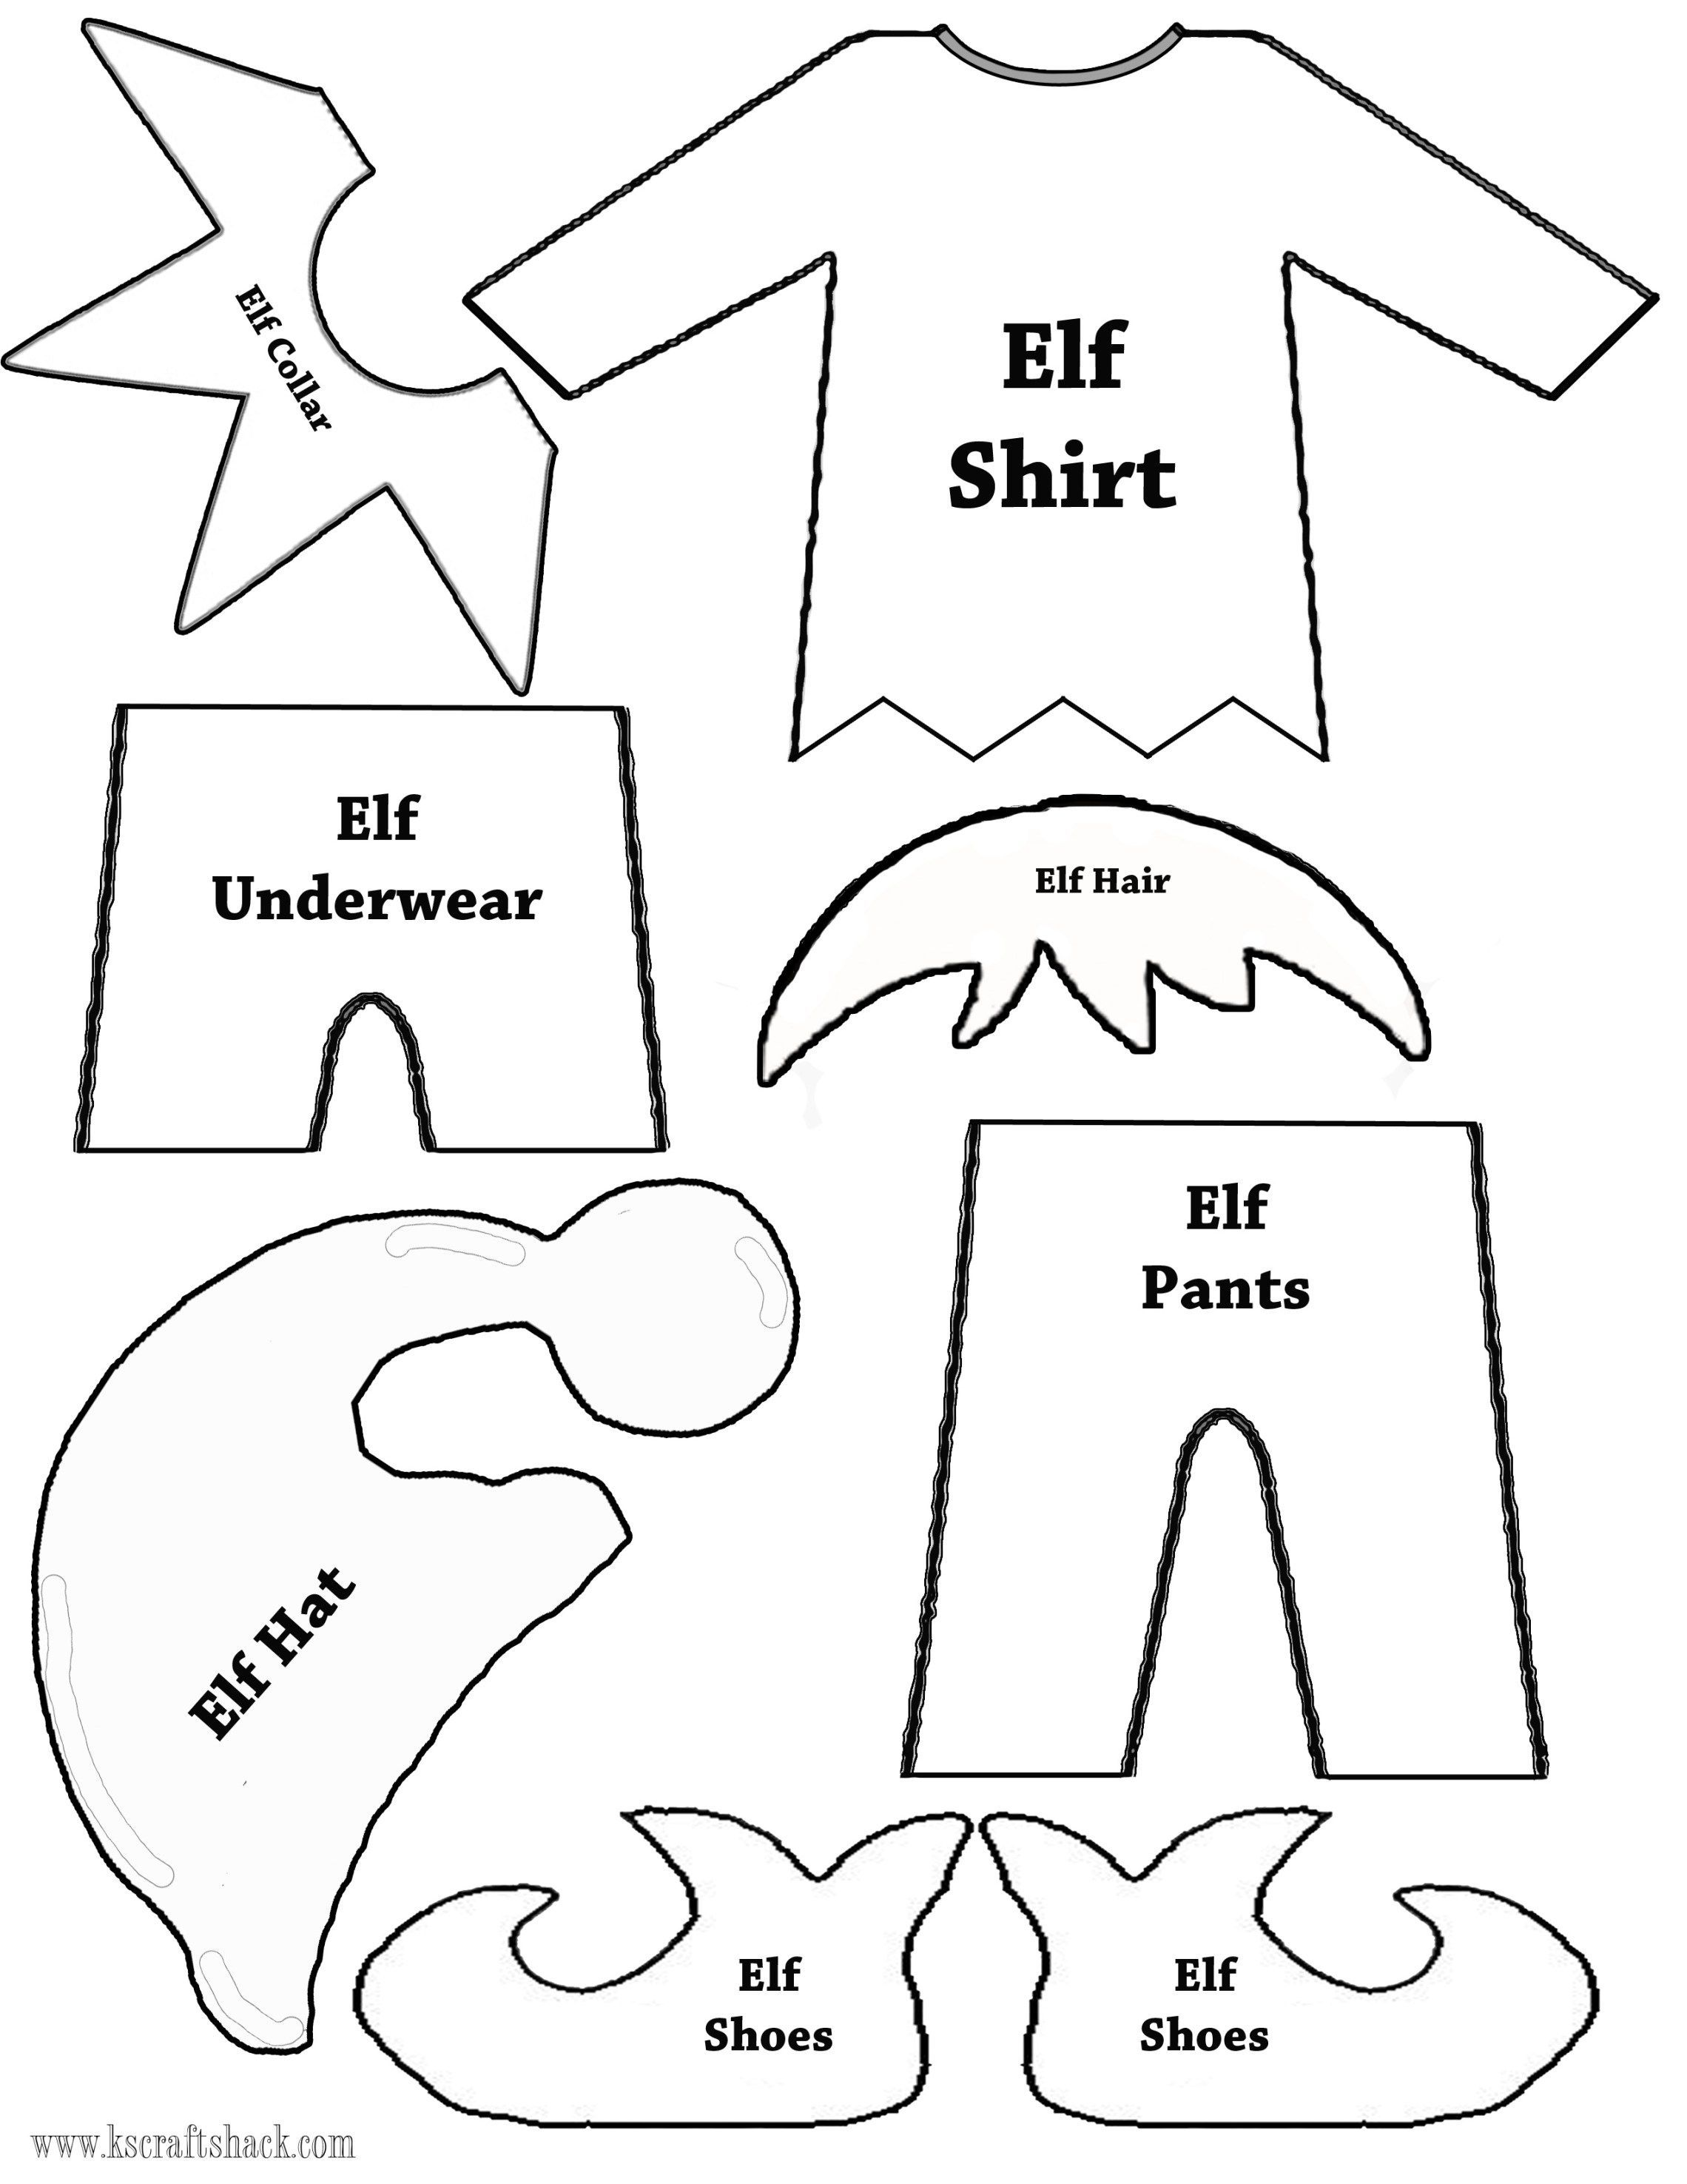 image result for christmas elf craft template clothespin dolls